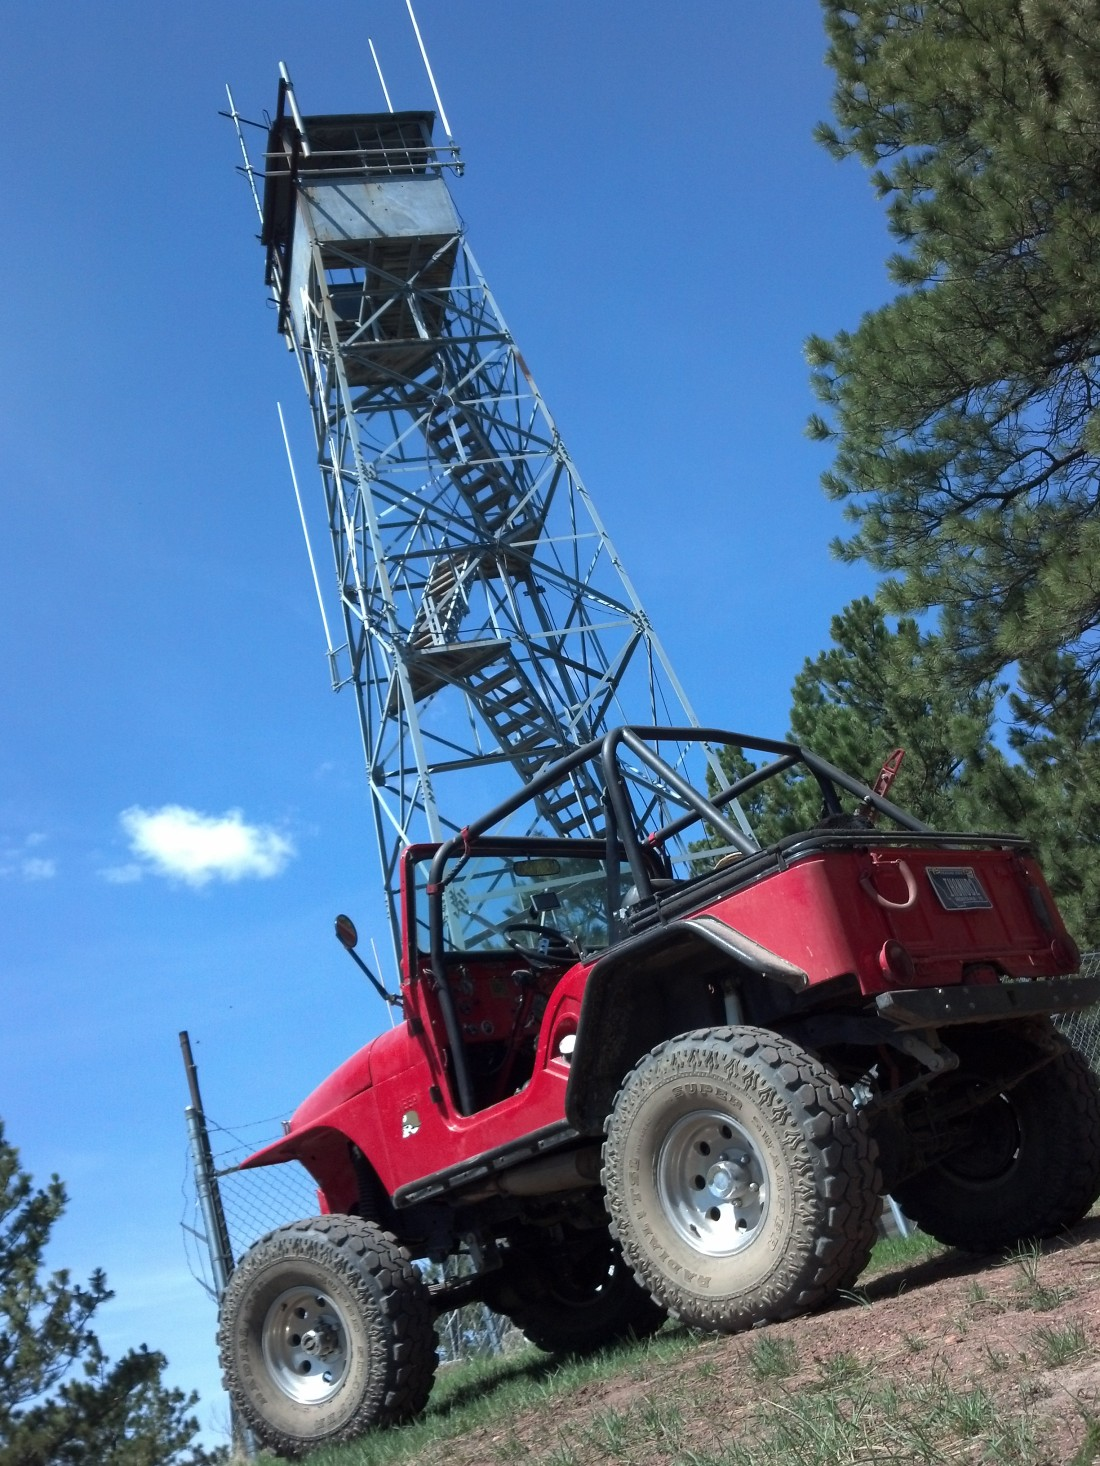 Fire Tower - near 4H Pond